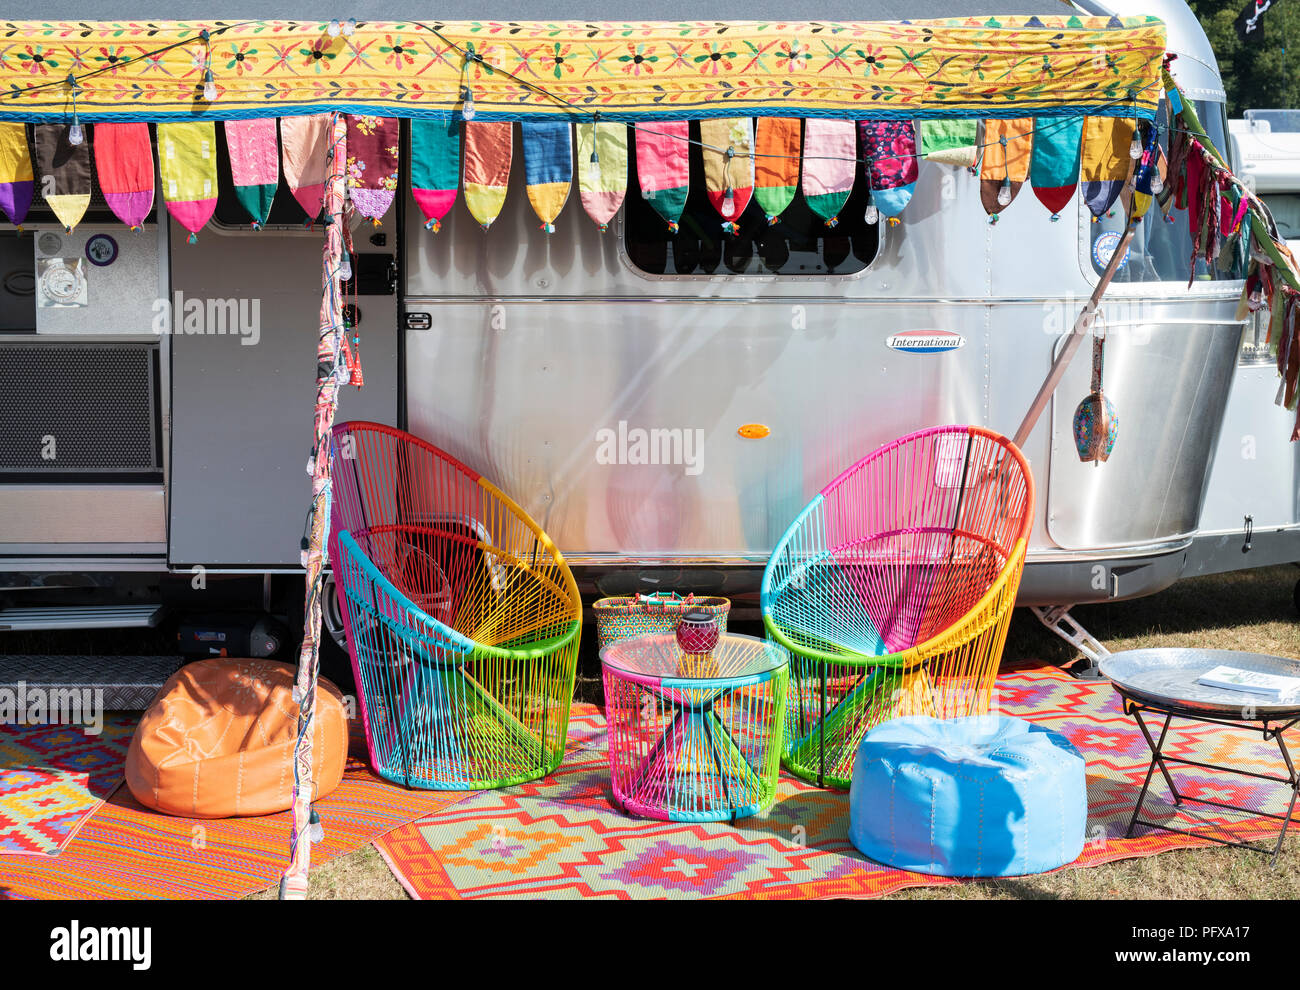 Colourful Airstream caravan at a vintage retro festival. UK - Stock Image